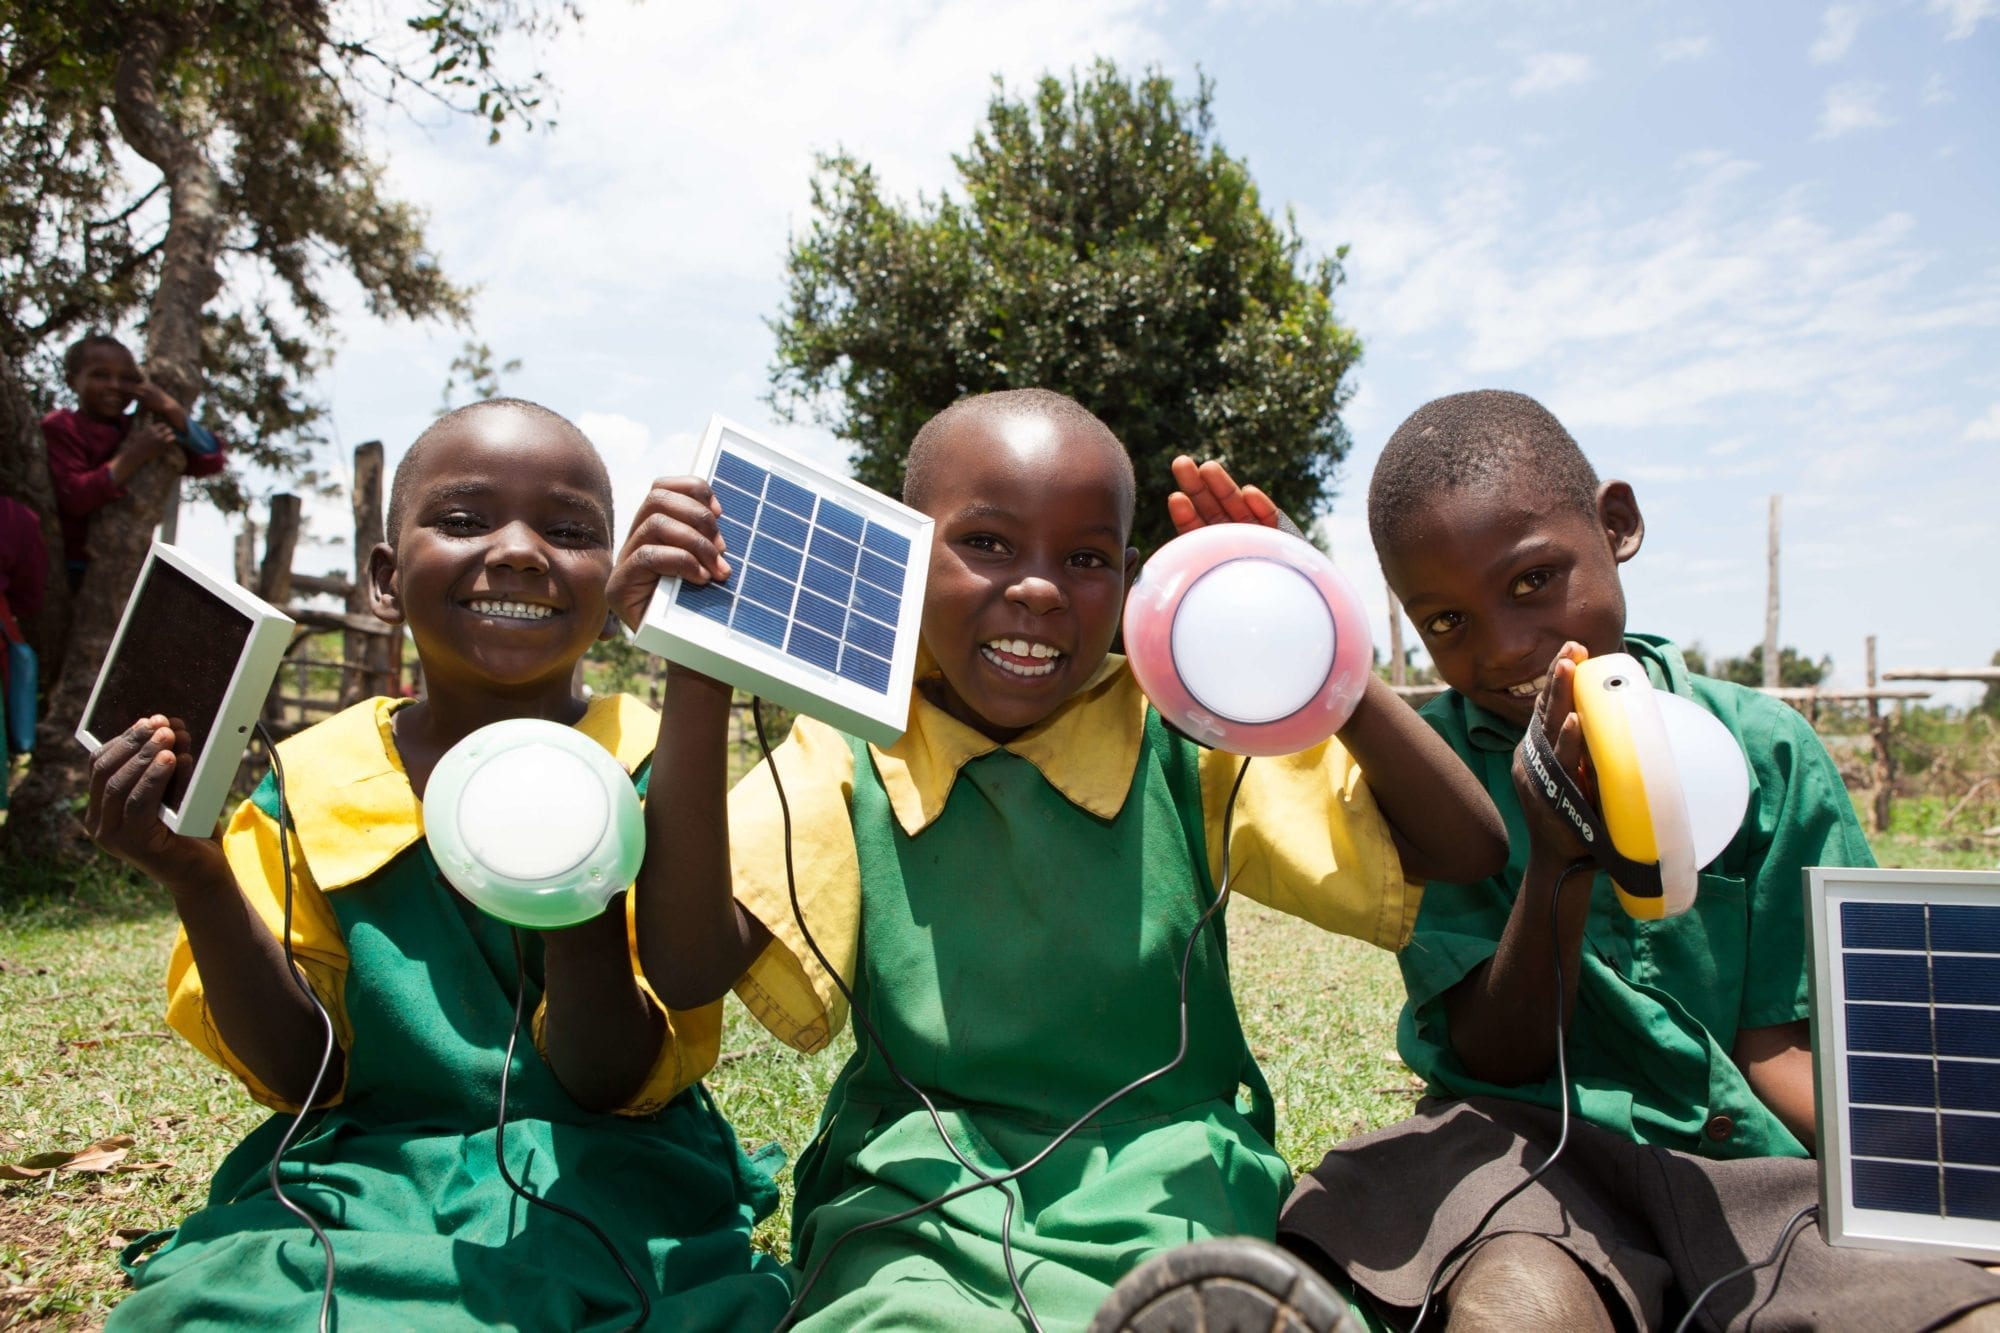 Alternative energy in East Africa: The case for solar power